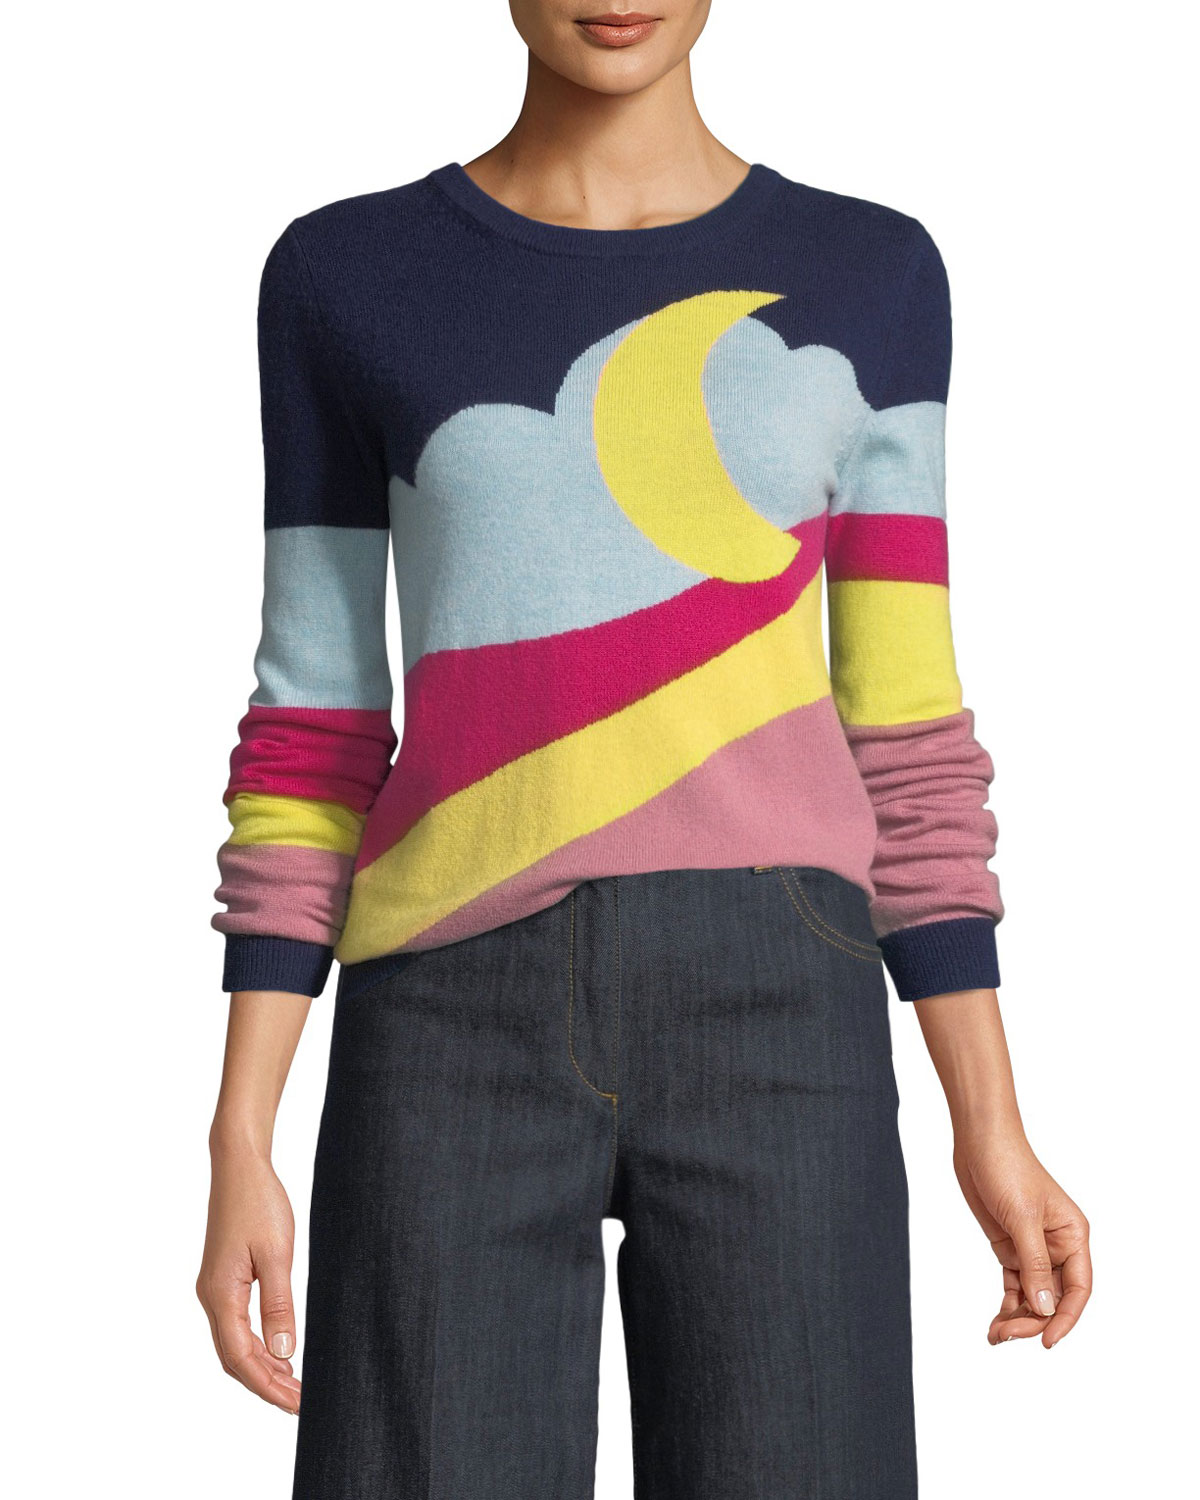 BOUTIQUE MOSCHINO Moon-Print Pullover Sweater in Multi